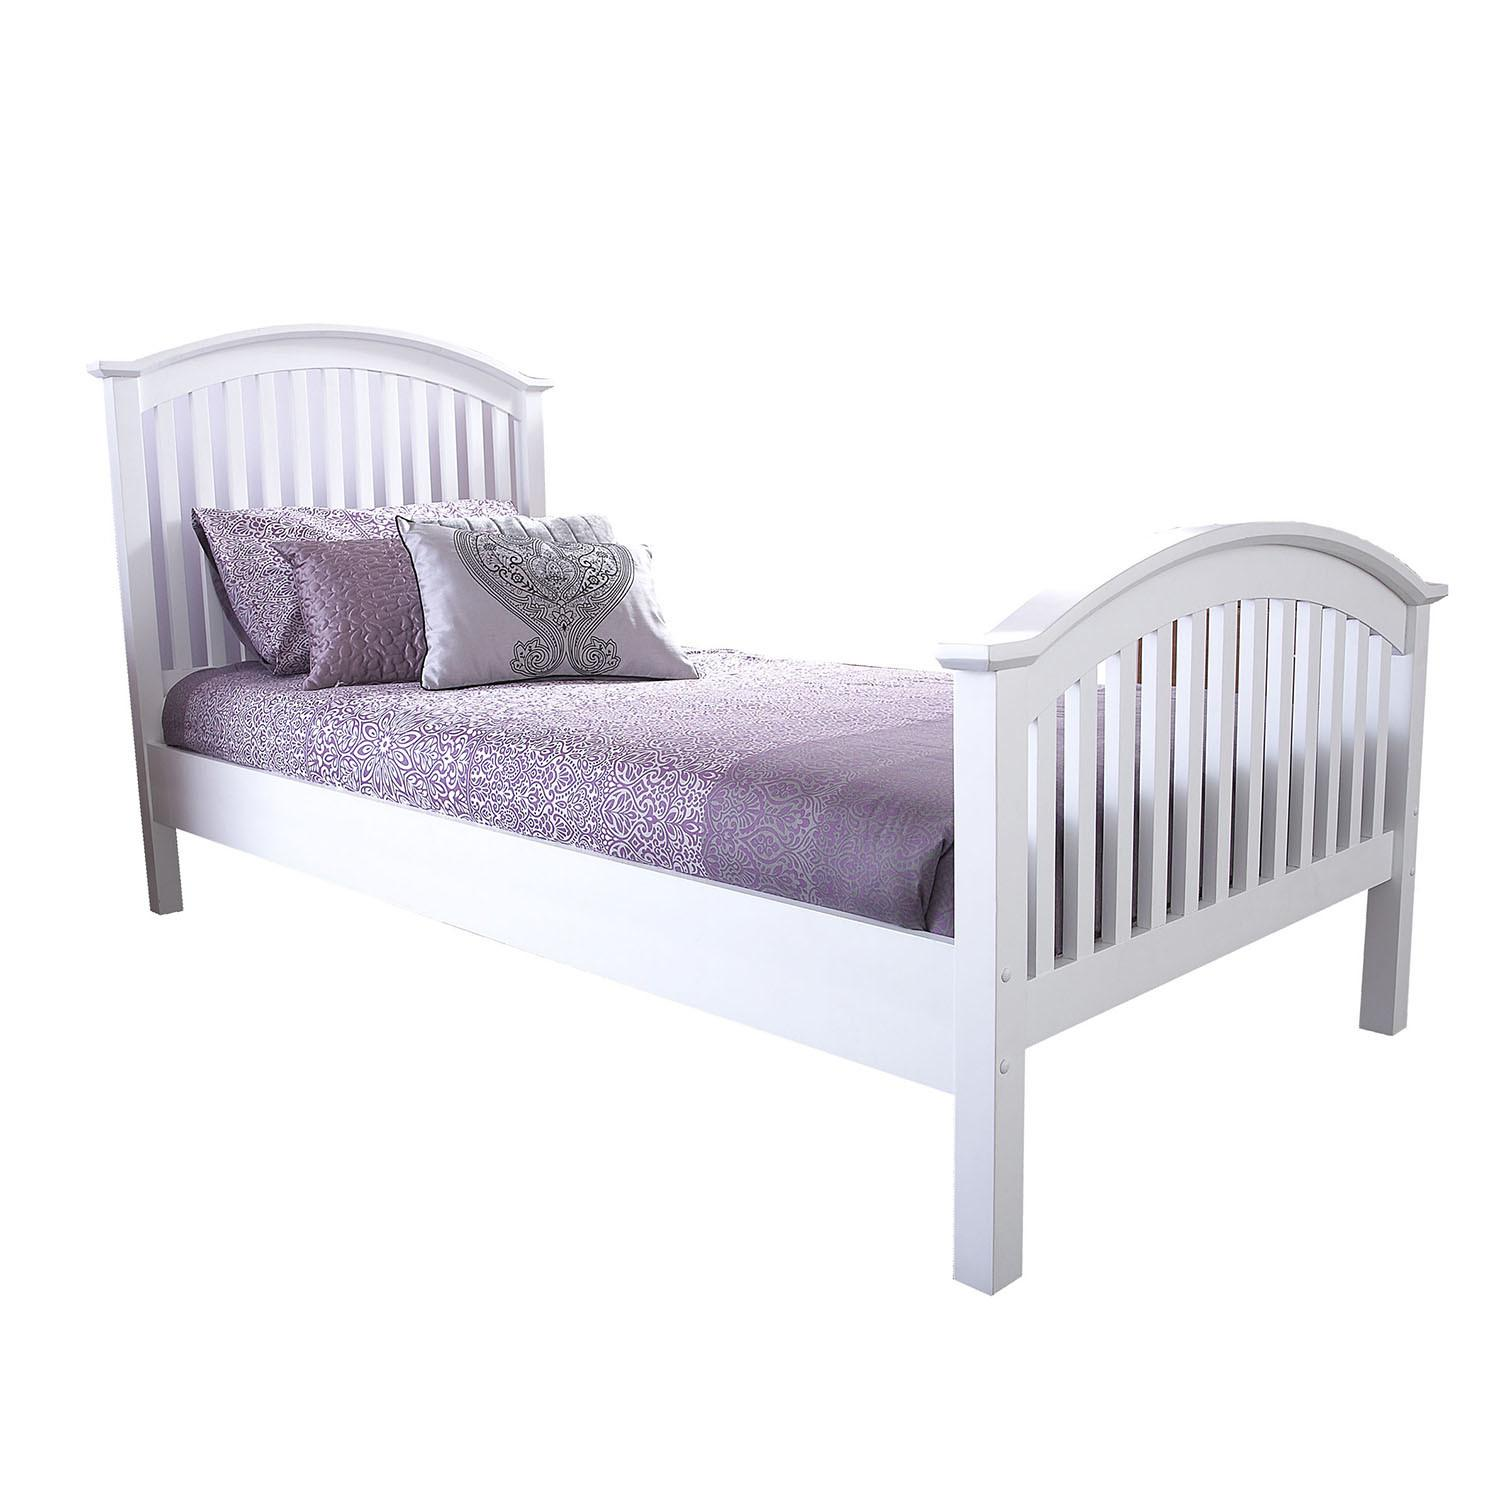 Madrid White High End Wooden Bed Next Day Select